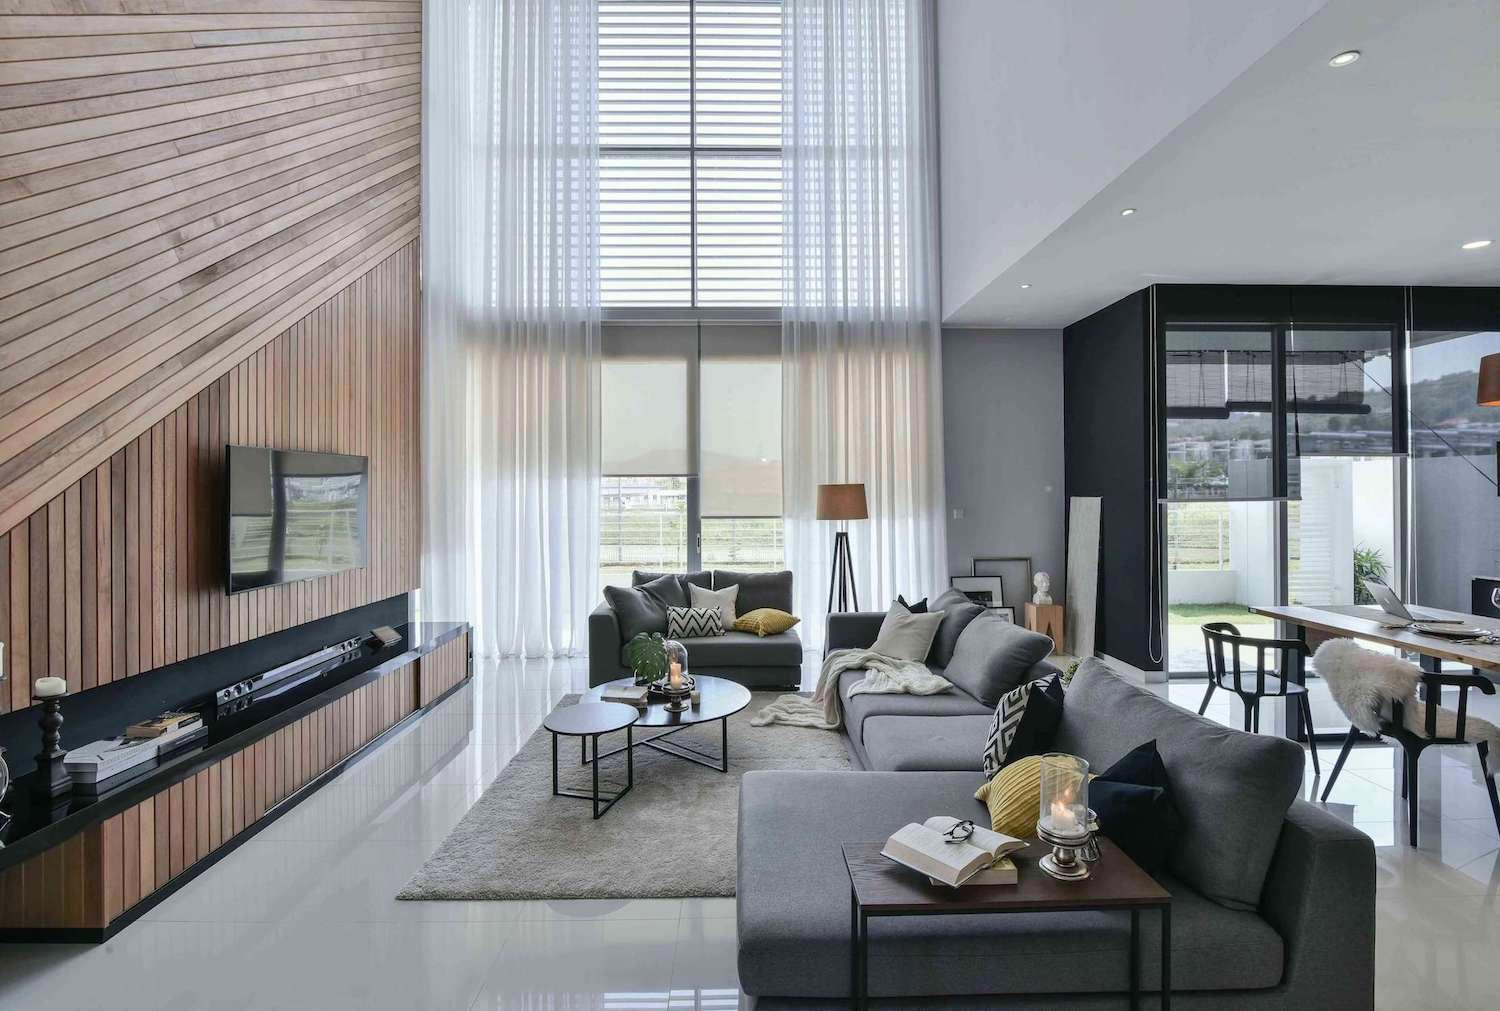 Wil S 11 Residence Living Room With A Double Volume Wood